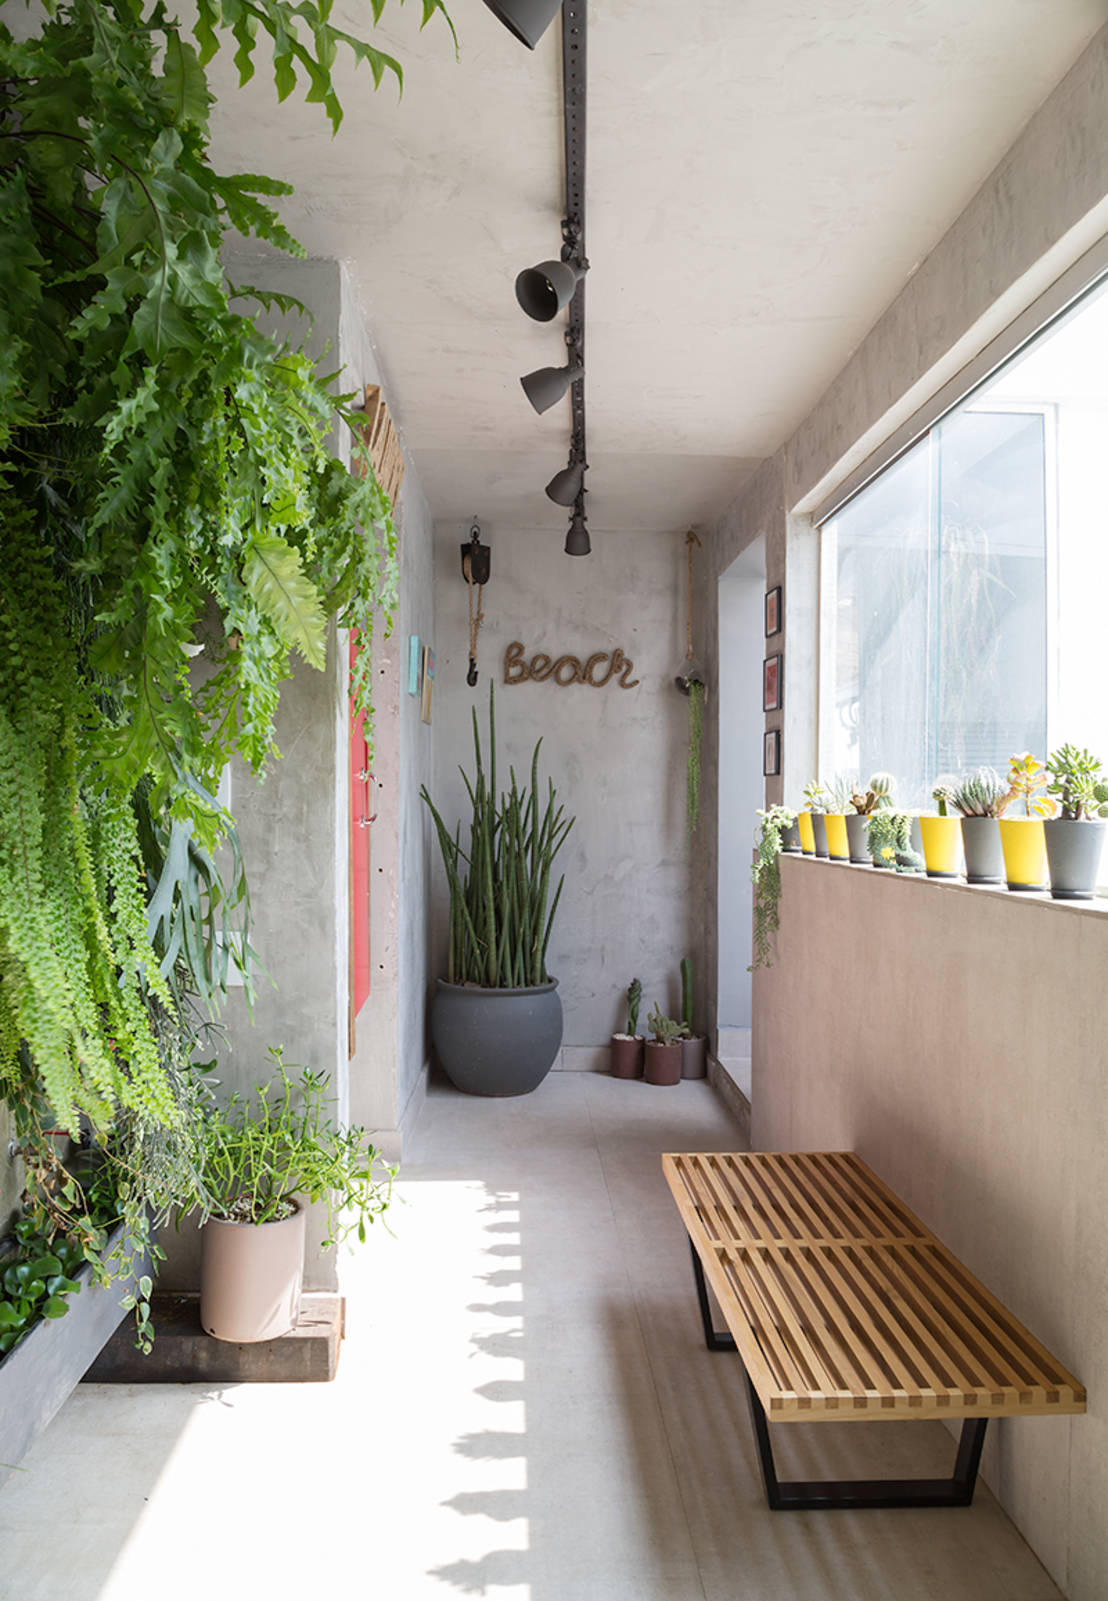 6 garden ideas for small spaces and corridors - Ideas for small patio spaces paint ...